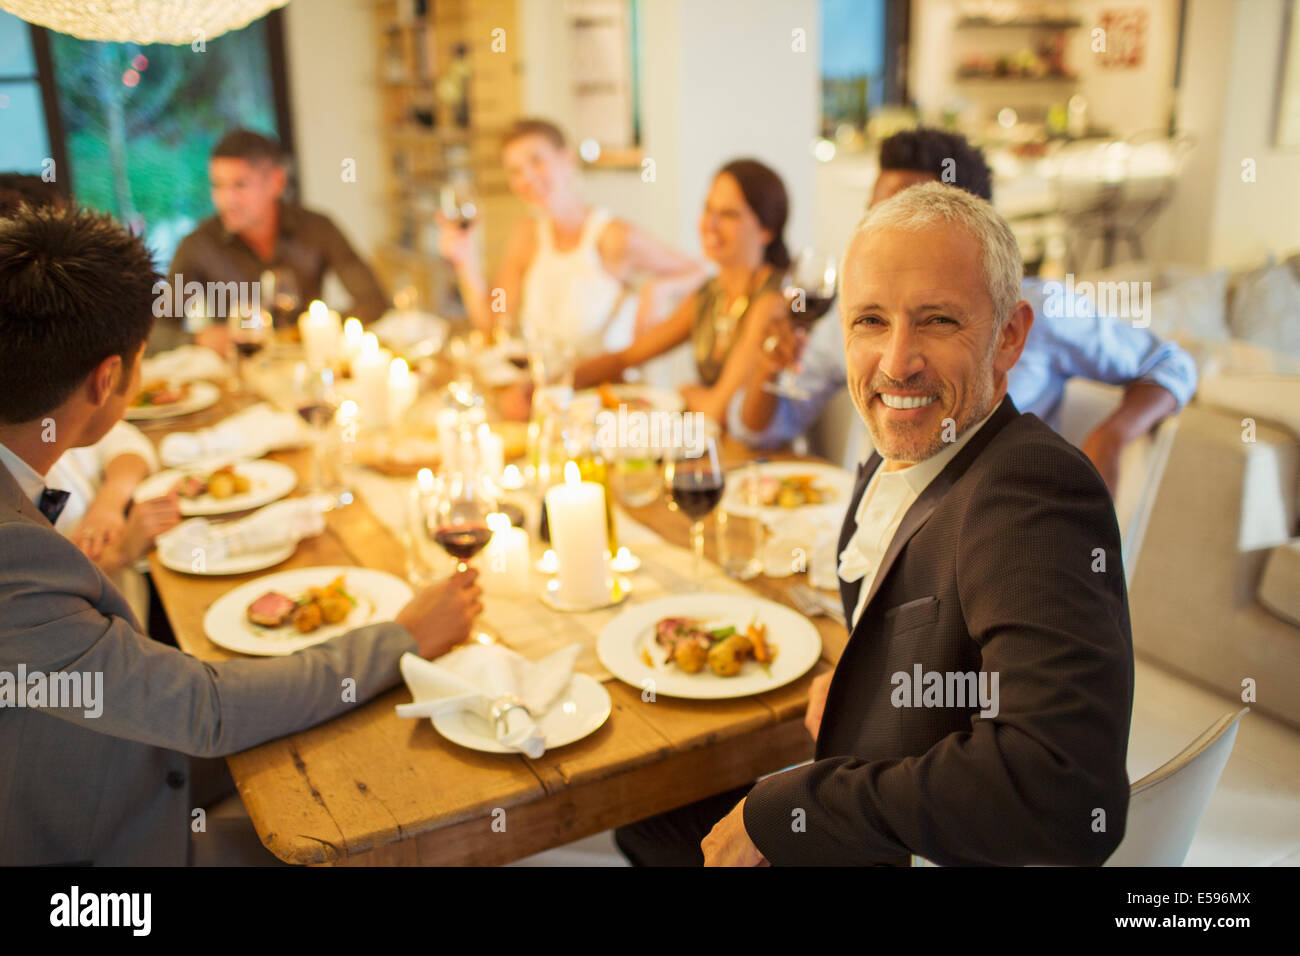 Man smiling at dinner party Photo Stock